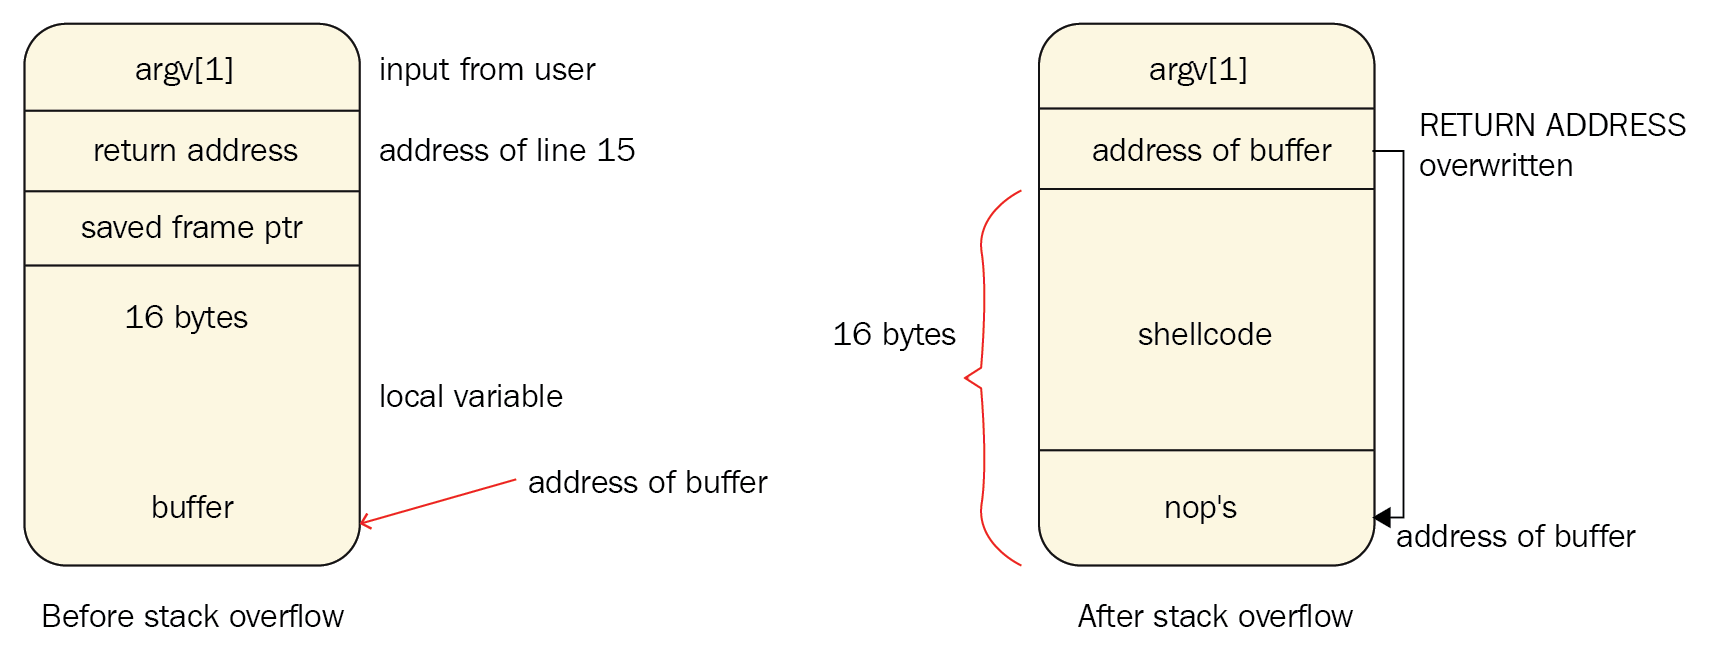 Shellcode placed in the buffer